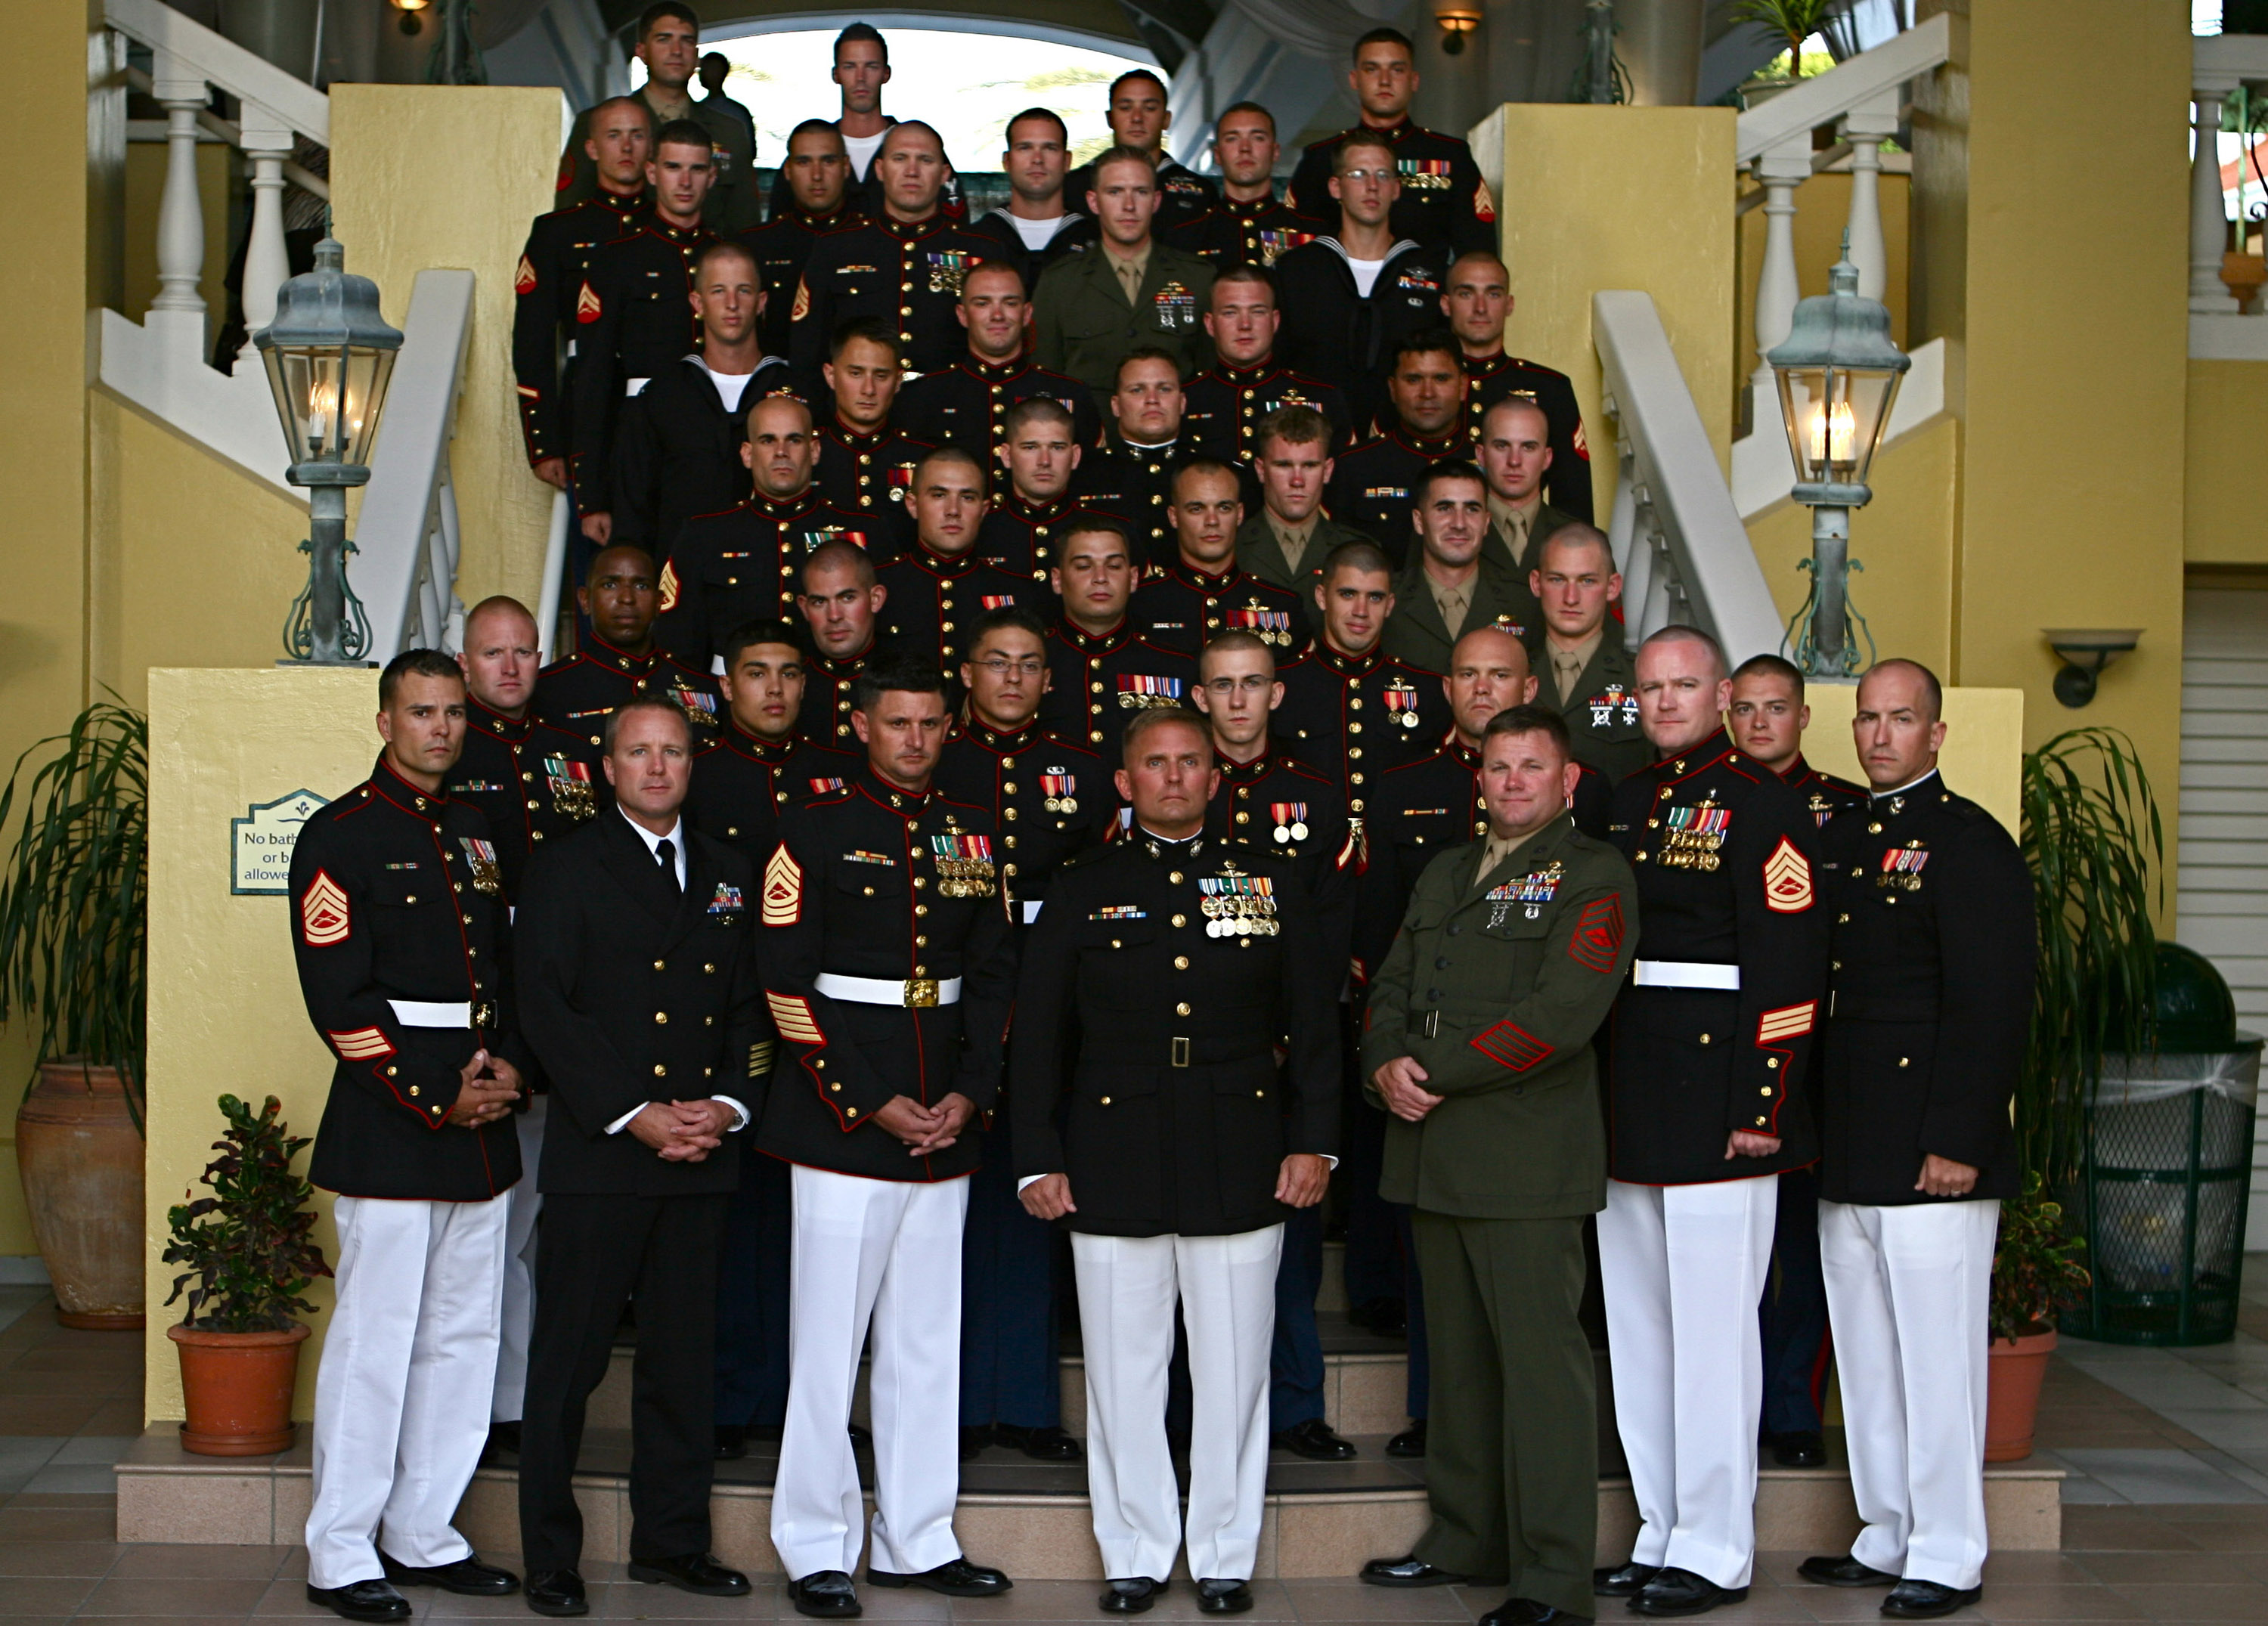 U.S. Marines celebrate their 235th birthday with Dutch ...